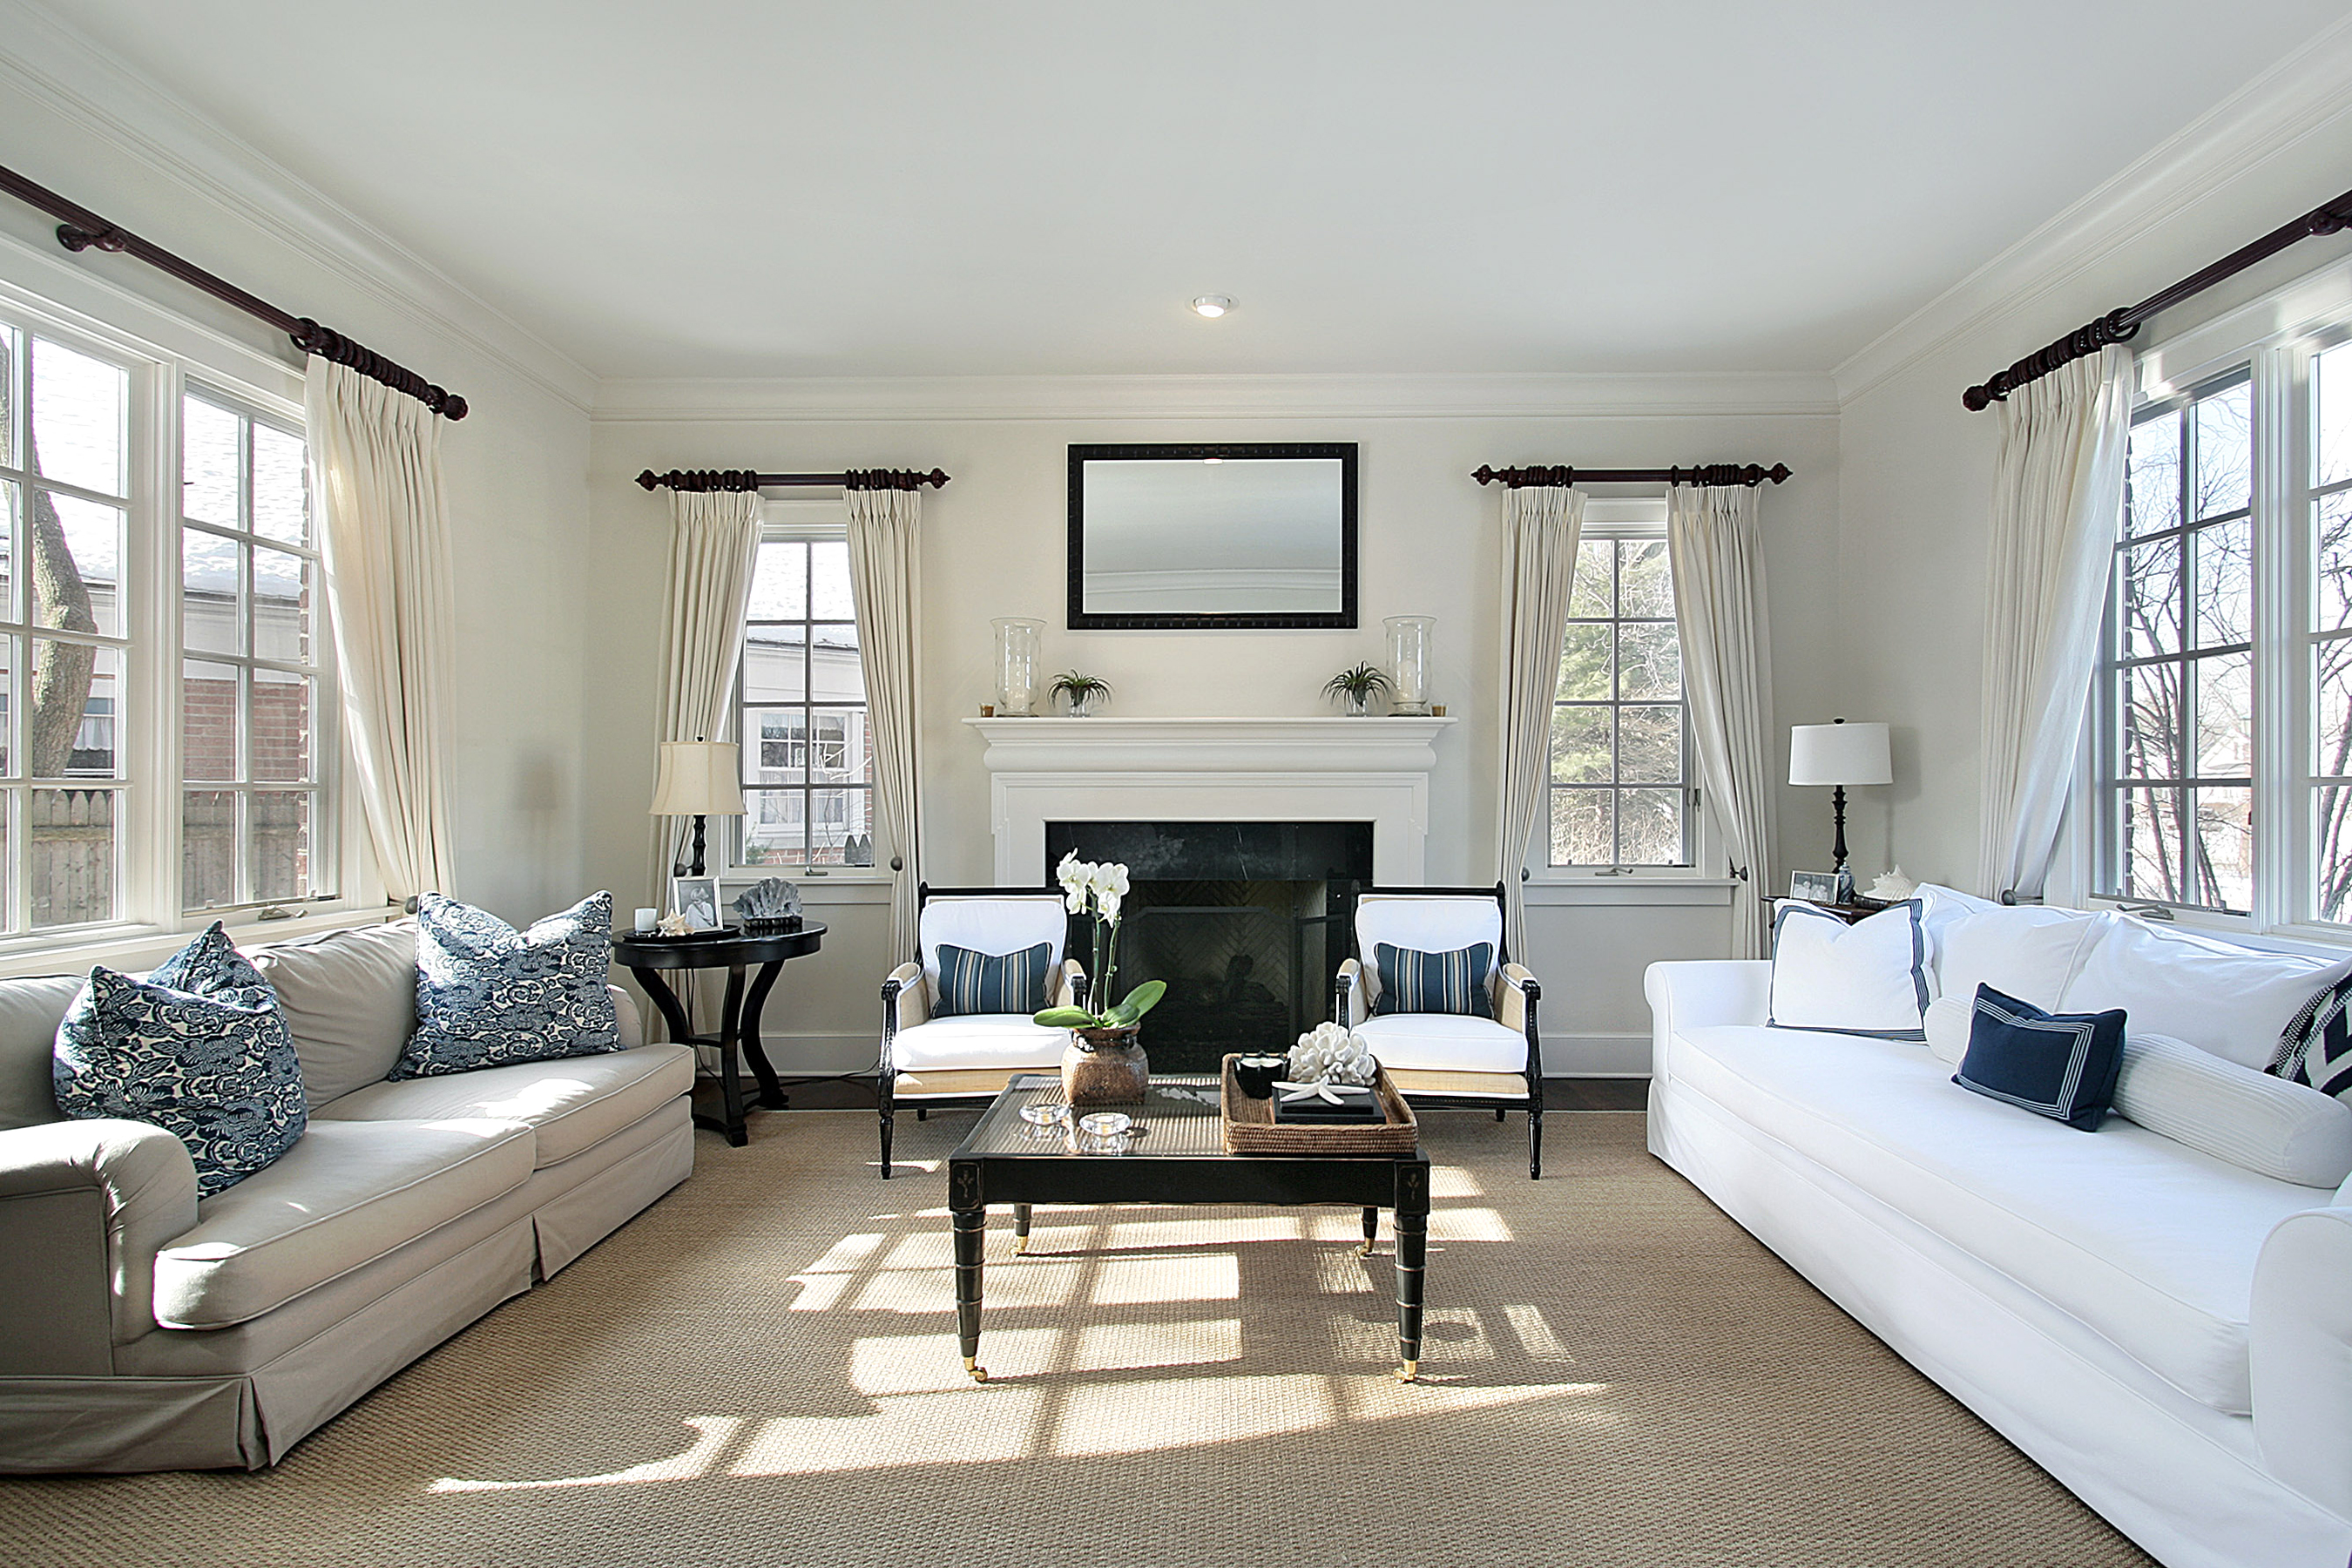 Home Staging Is An Art Its As Simple That But Learning How To Master It May Just Be The Key A Successful And Quick Sale Of Your Property